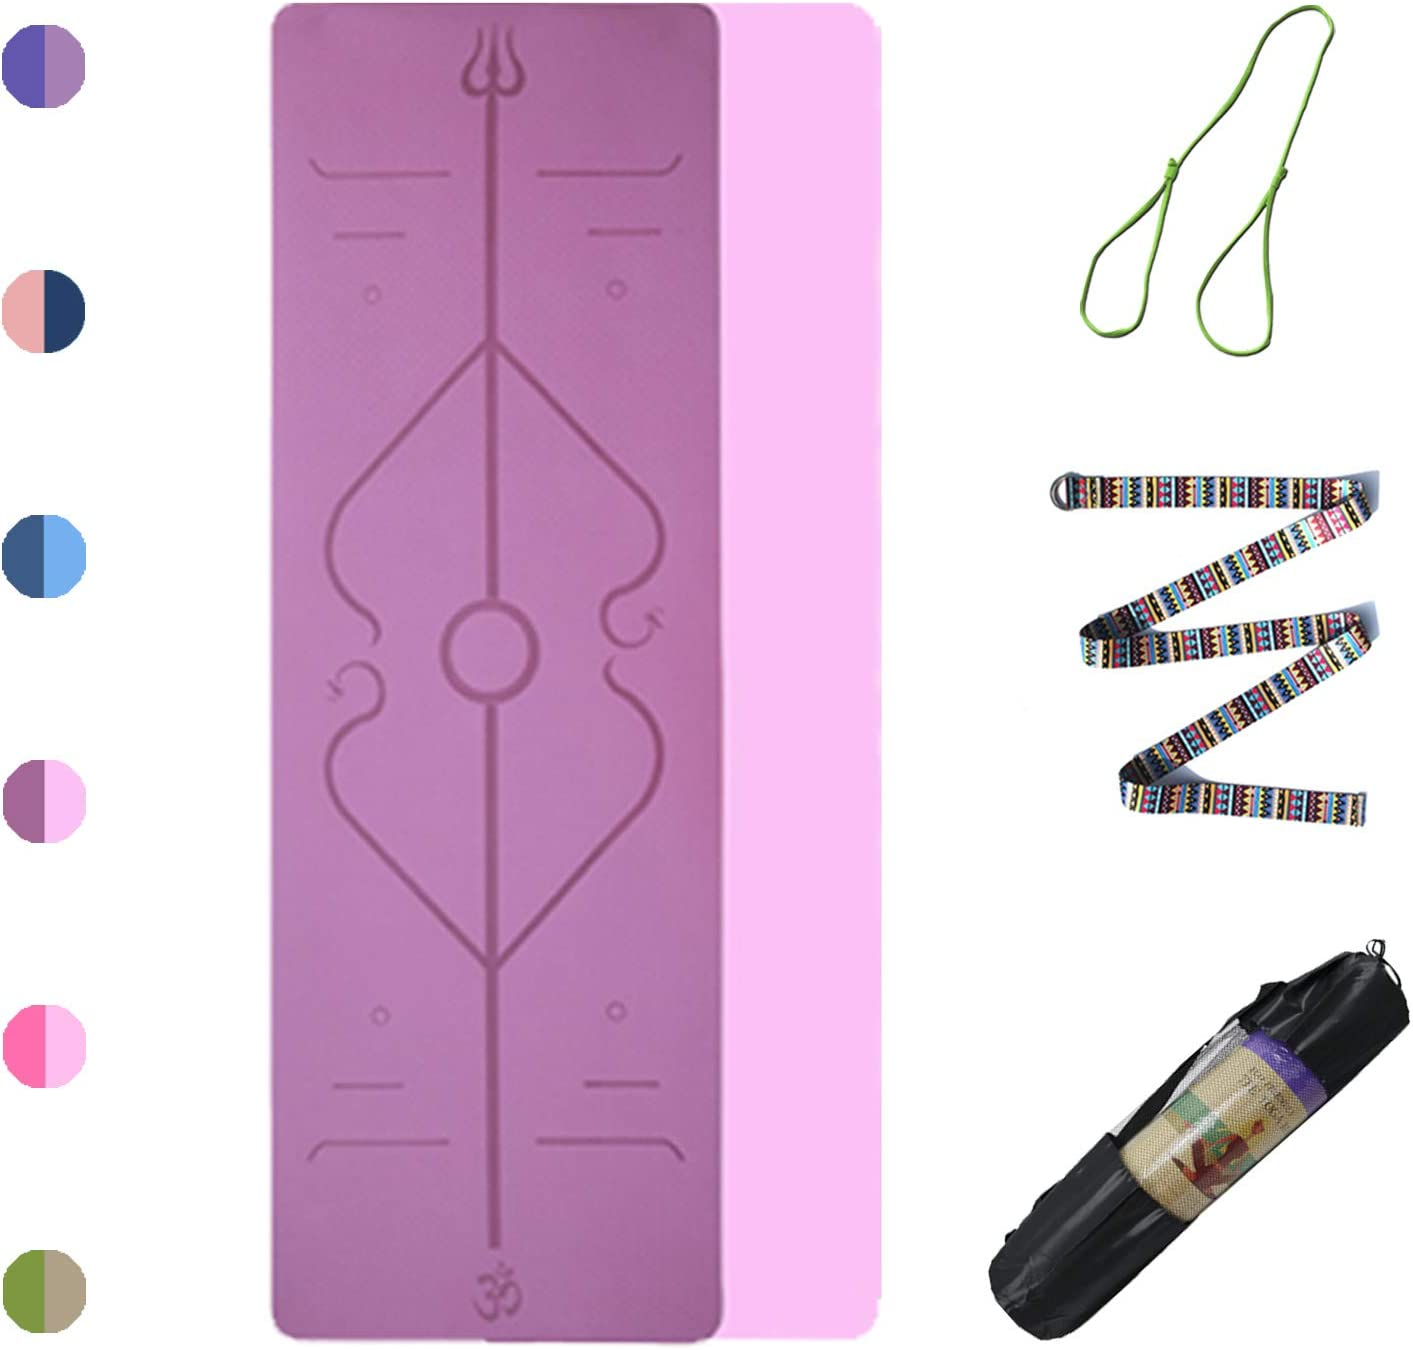 Non Slip 72 x 24inch Yoga Mat with Alignment Line /& Double Face Color Free Yoga Strap /& Bag 6mm Thick TPE Material Yoga Mats for Bikram Pilates Hot Yoga Mat